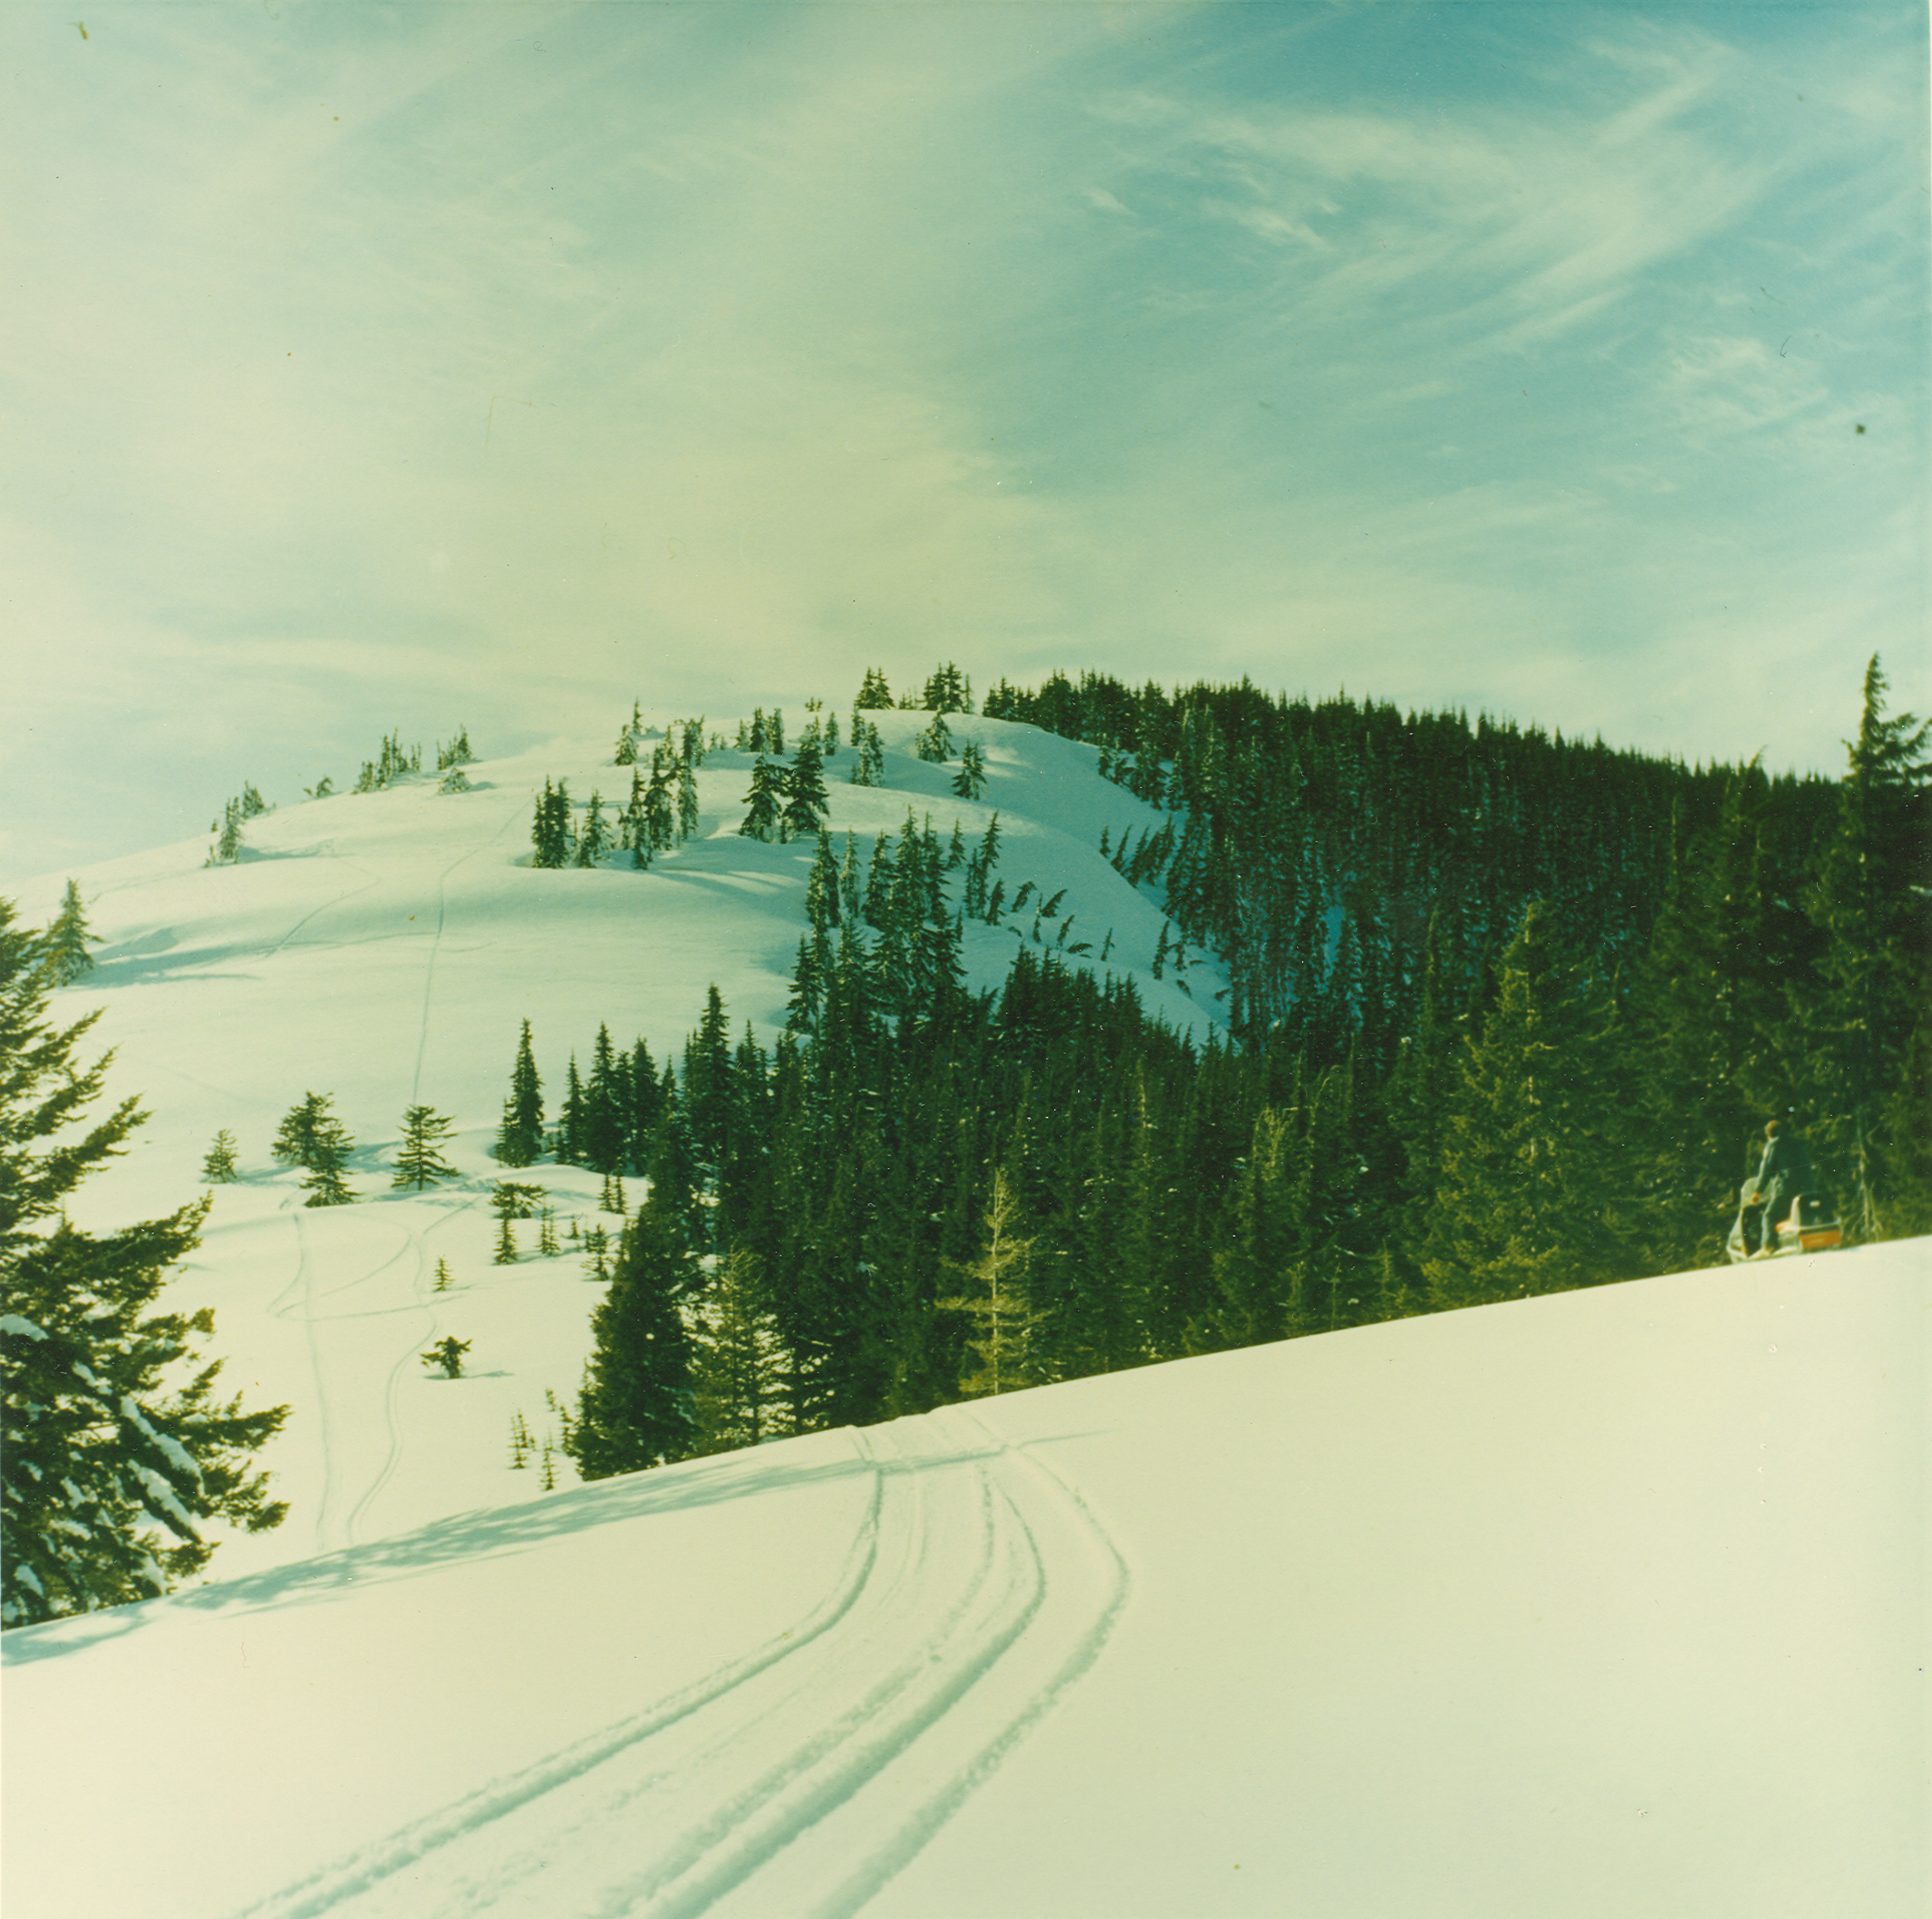 File:Snowmobile tracks in Coeur d'Alene National Forest 99-8078